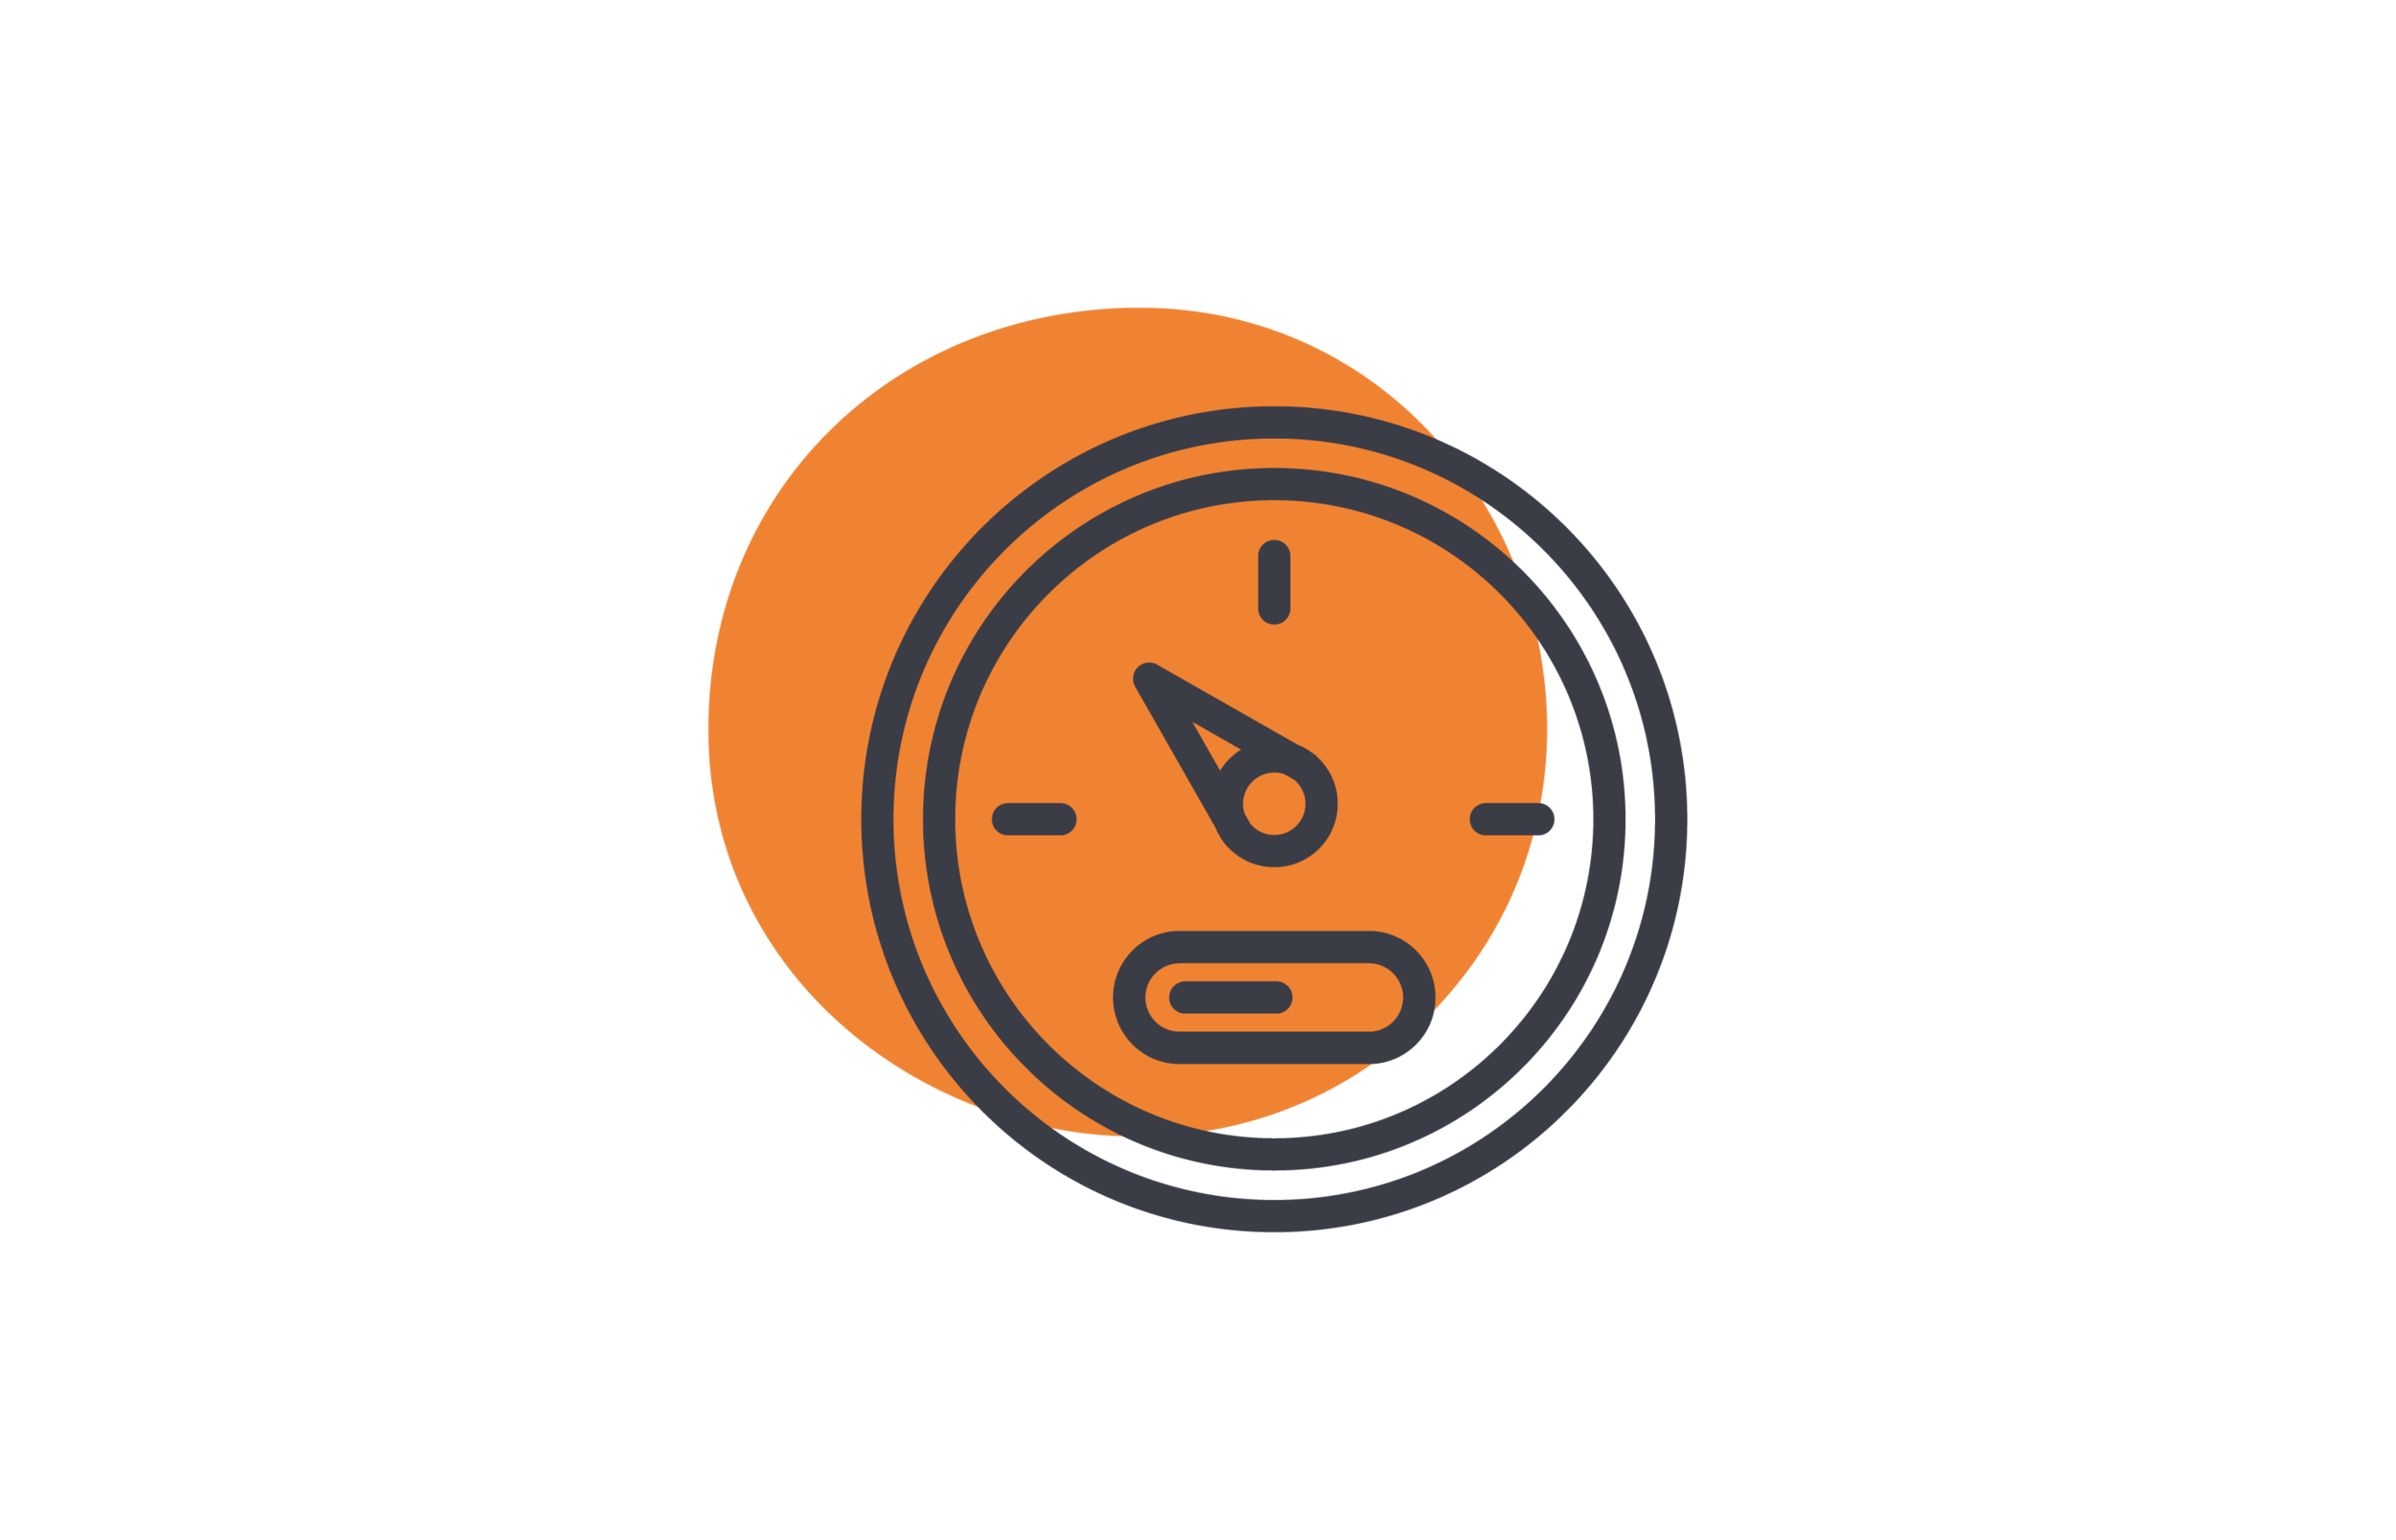 Icon_Energy Efficiency_Orange.png